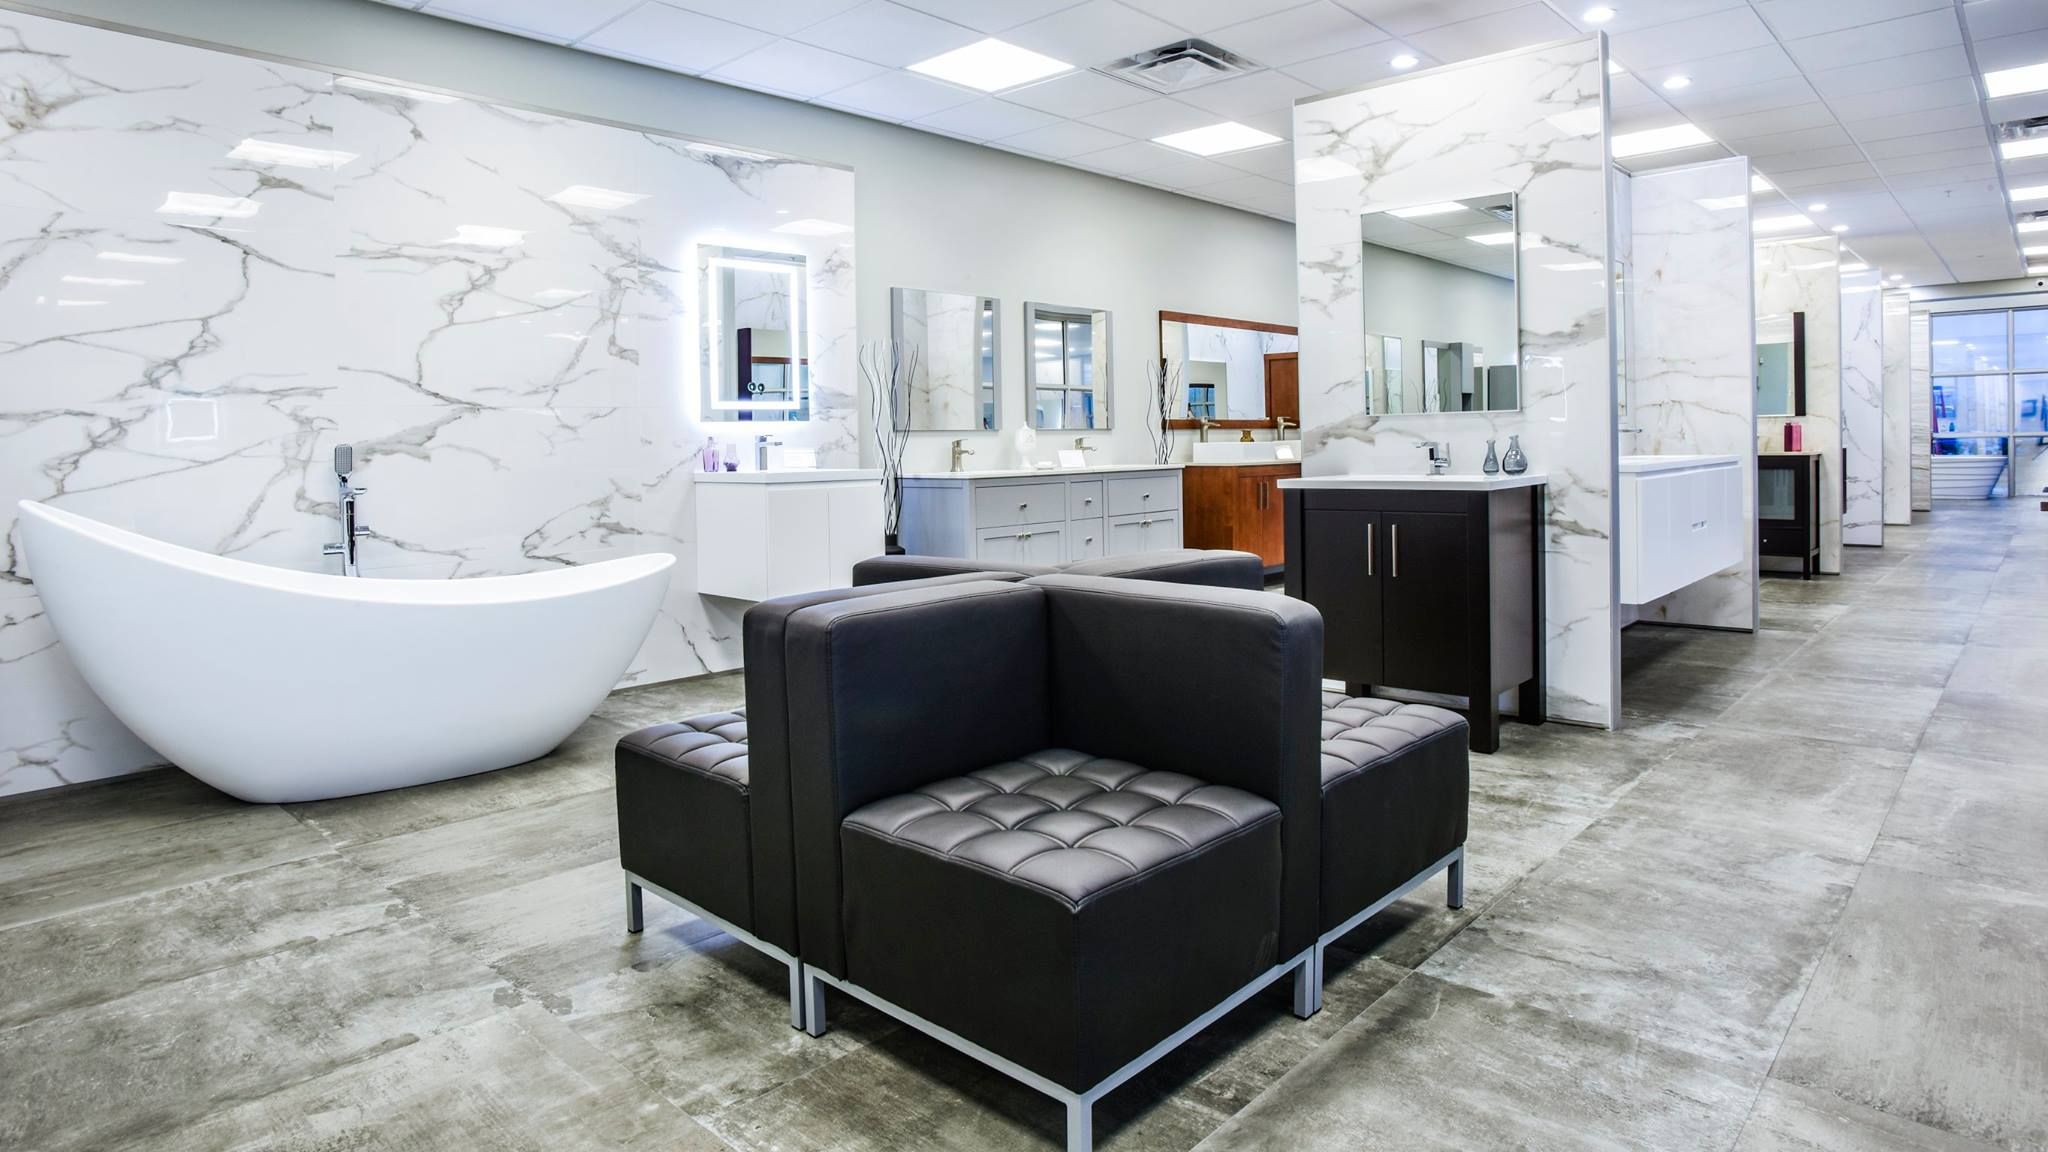 Bon Bathroom Place Offers Modern Bathroom Vanities, Faucets, Showers, Sinks,  And Toilets. Visit One Of Our Three South Florida Showrooms In Miami U0026 Fort  ...